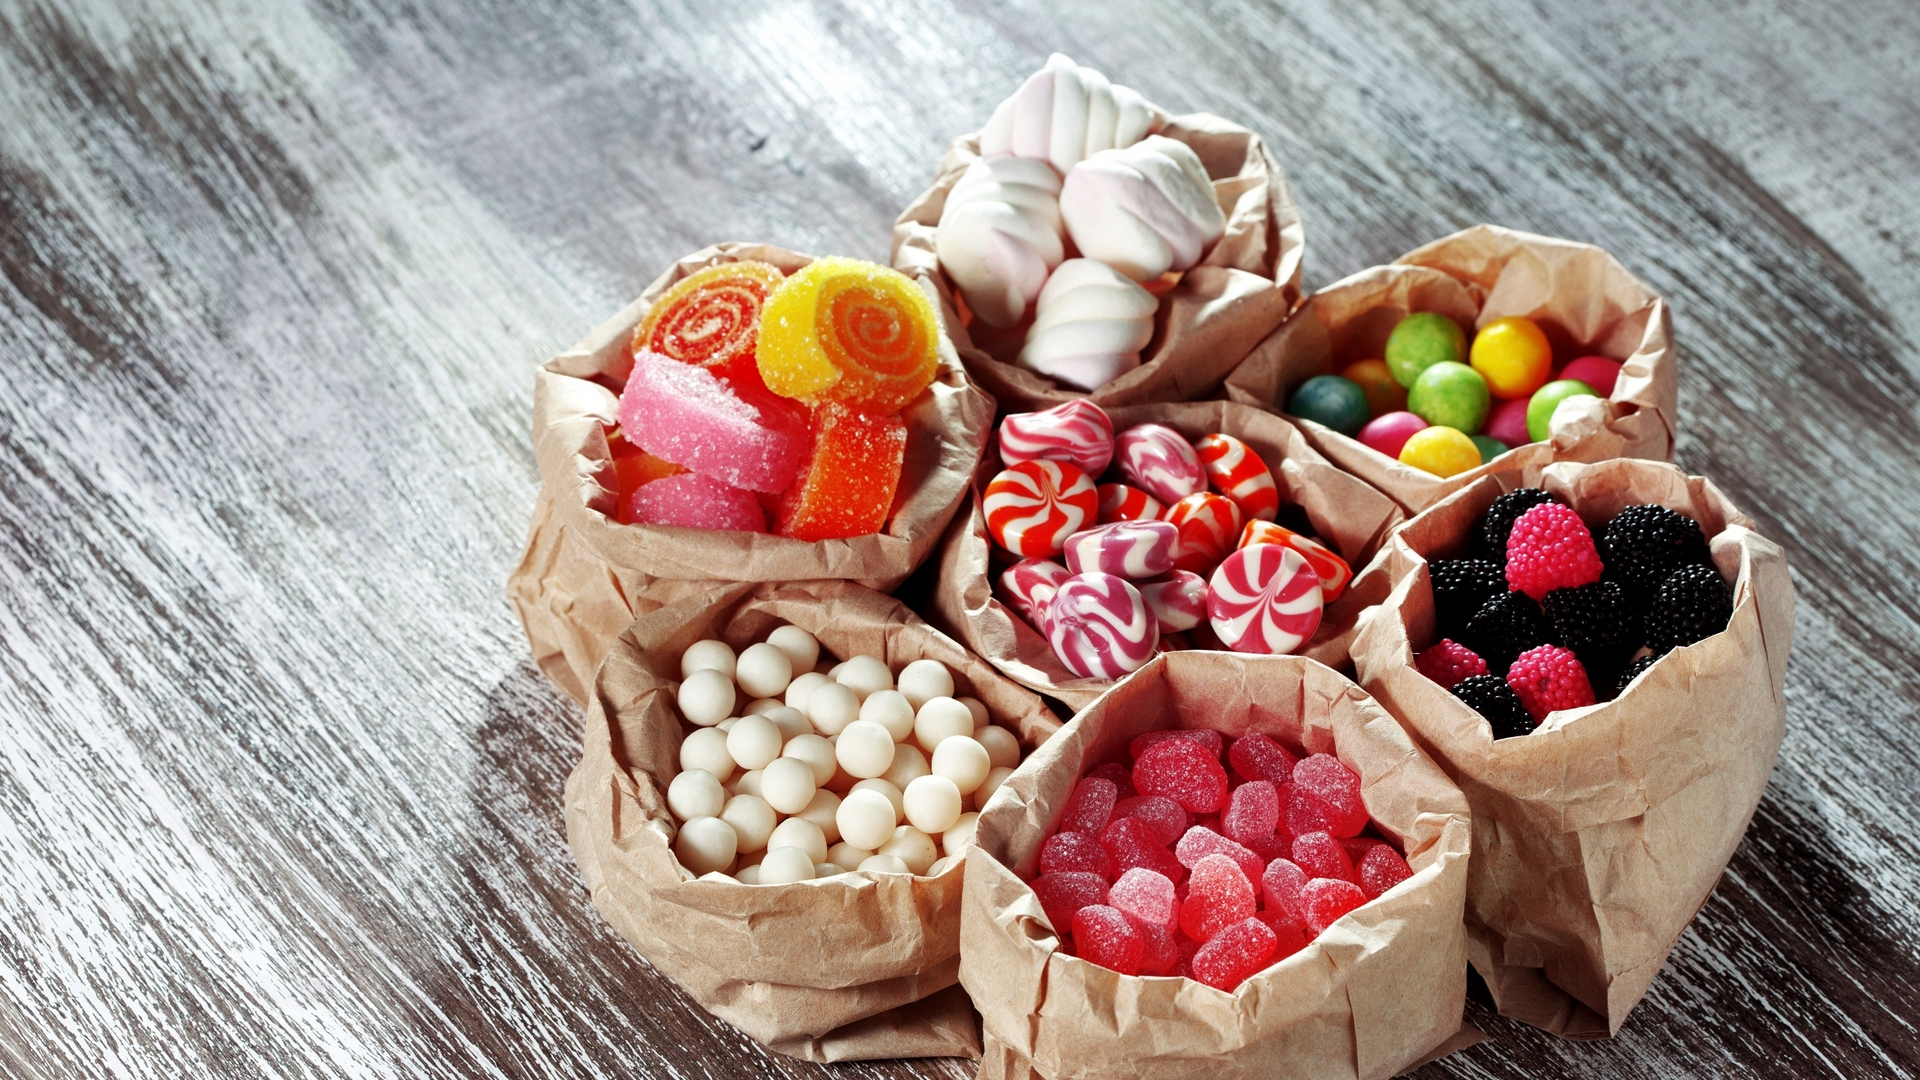 box,confectionery,parcel,package,food,concoction,confection,glaze,packet,bundle,nutrient,comfit,candy,sweets and candies